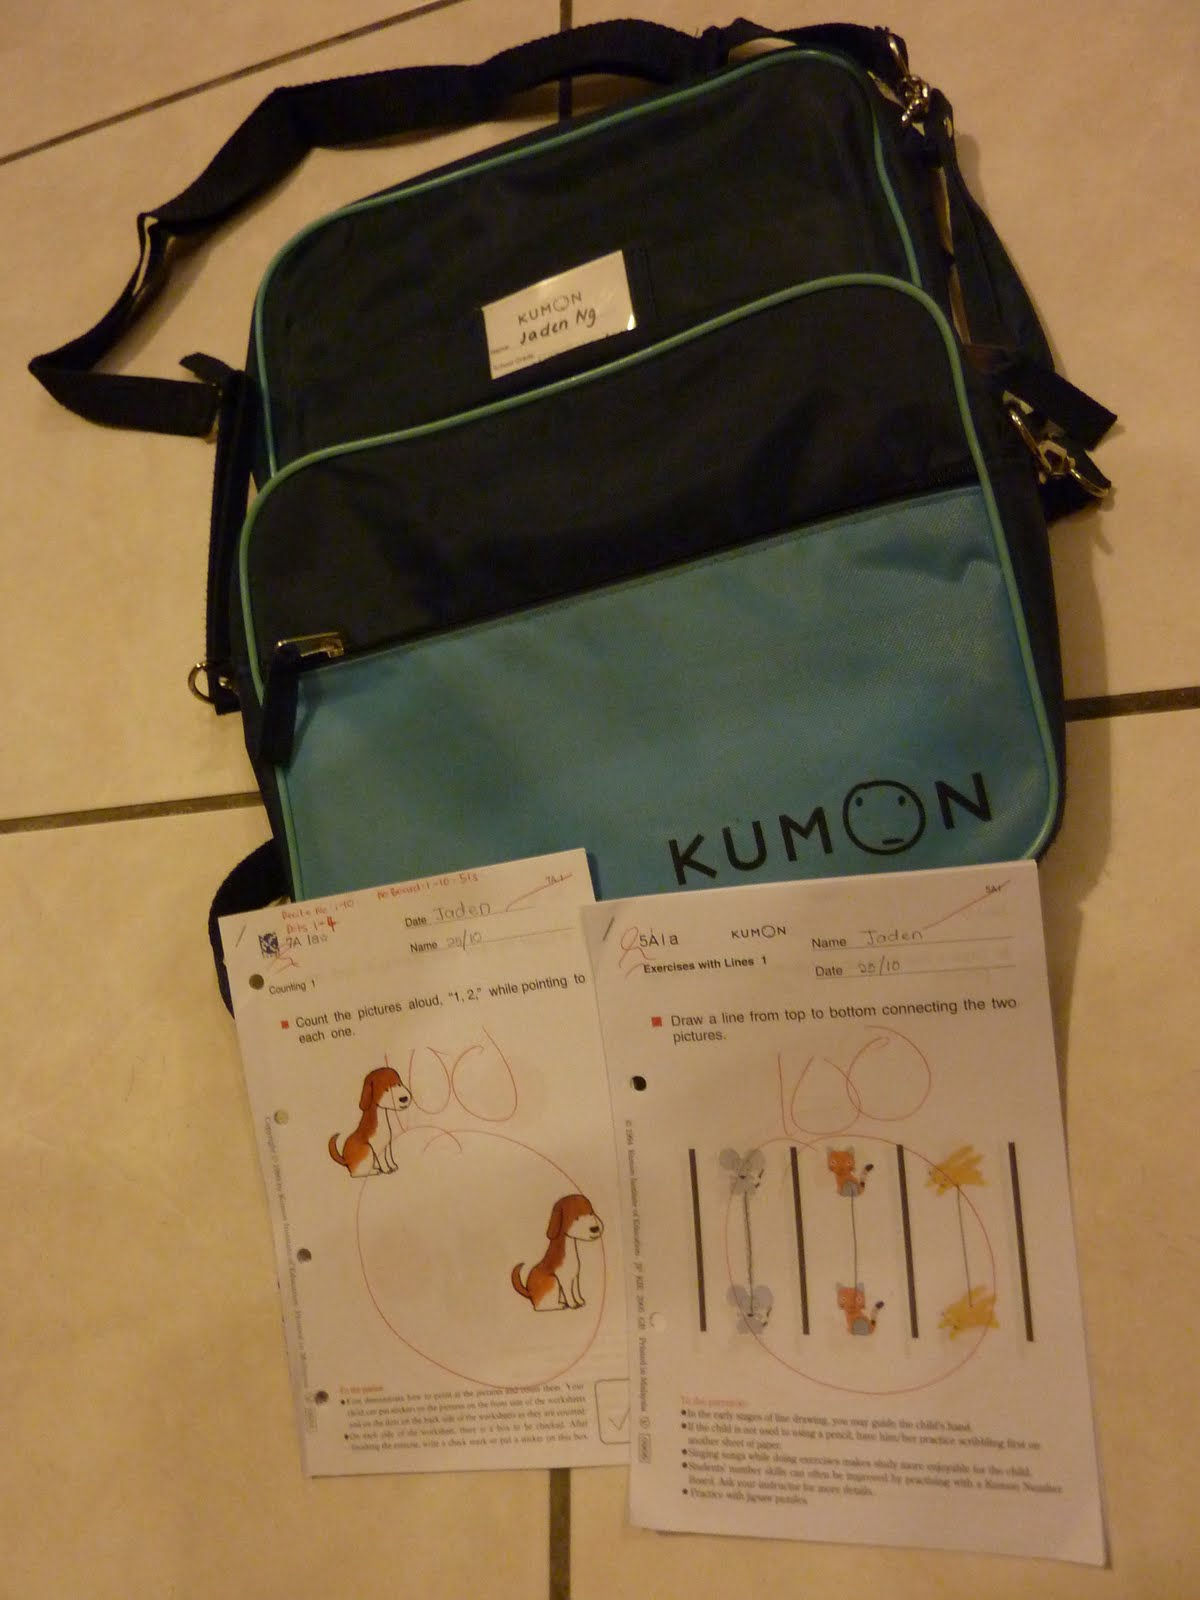 Treasure Memories Jaden 1st Day In Kumon